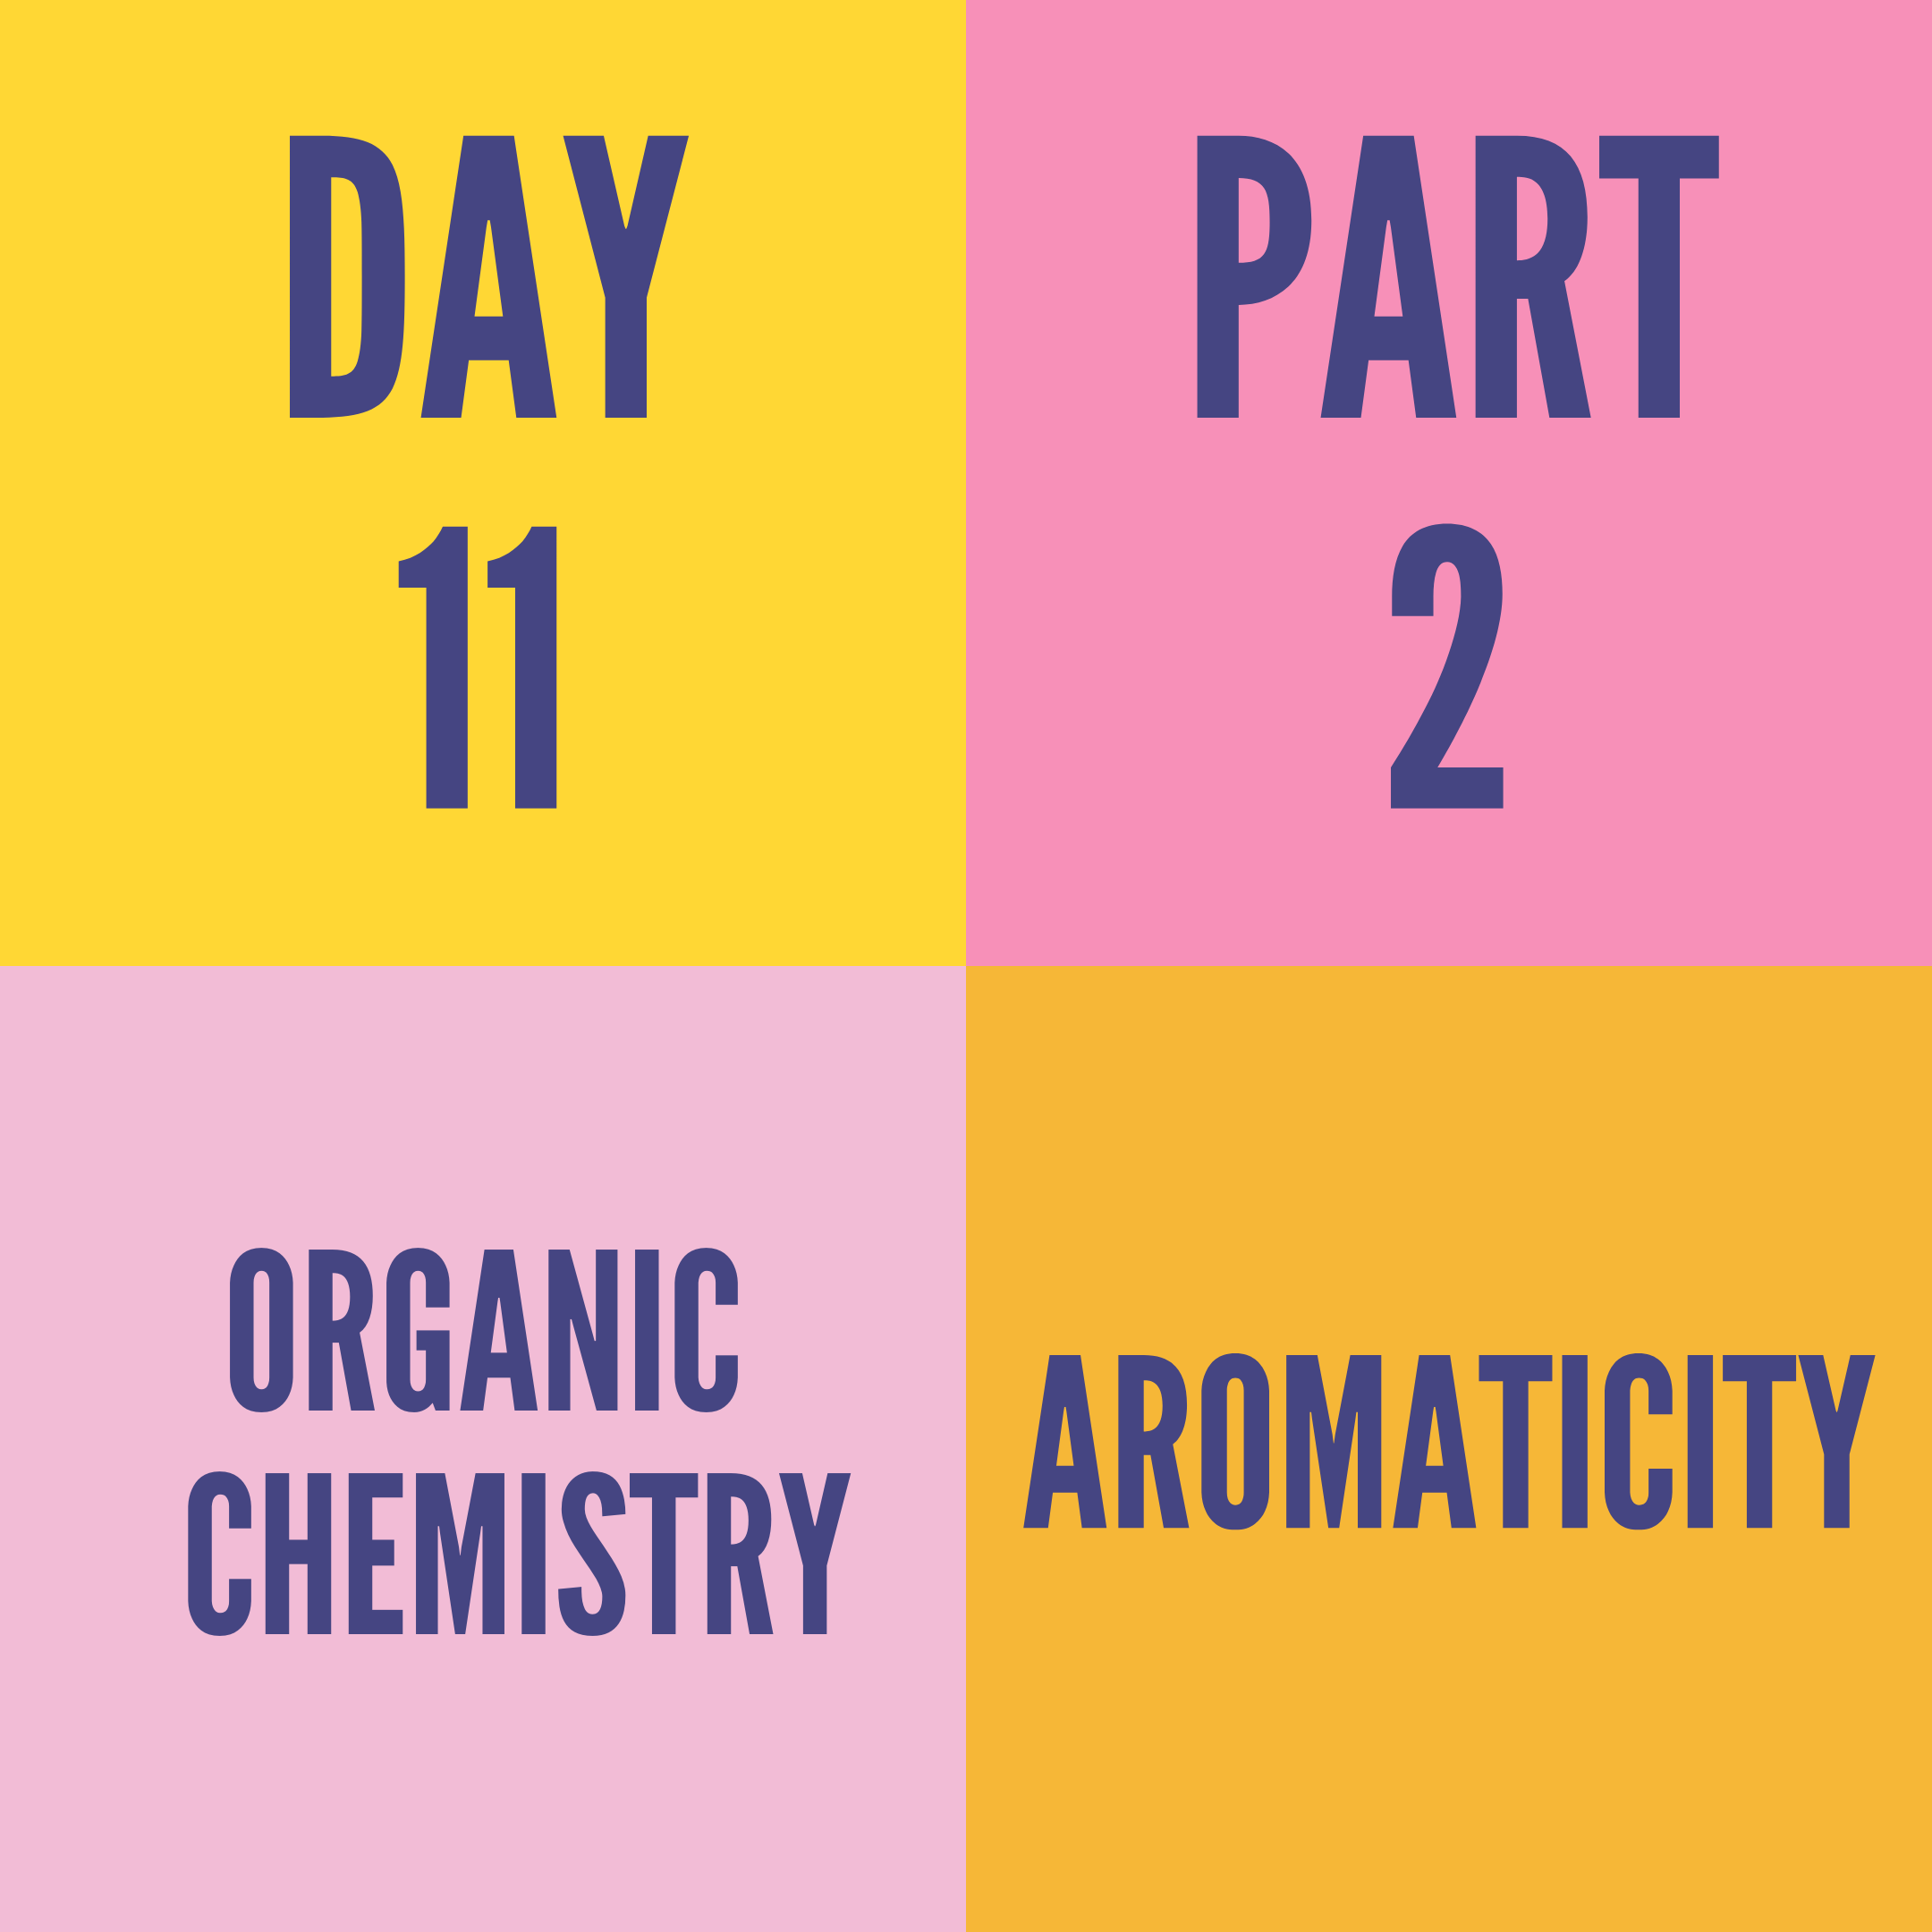 DAY-11 PART-2 AROMATICITY